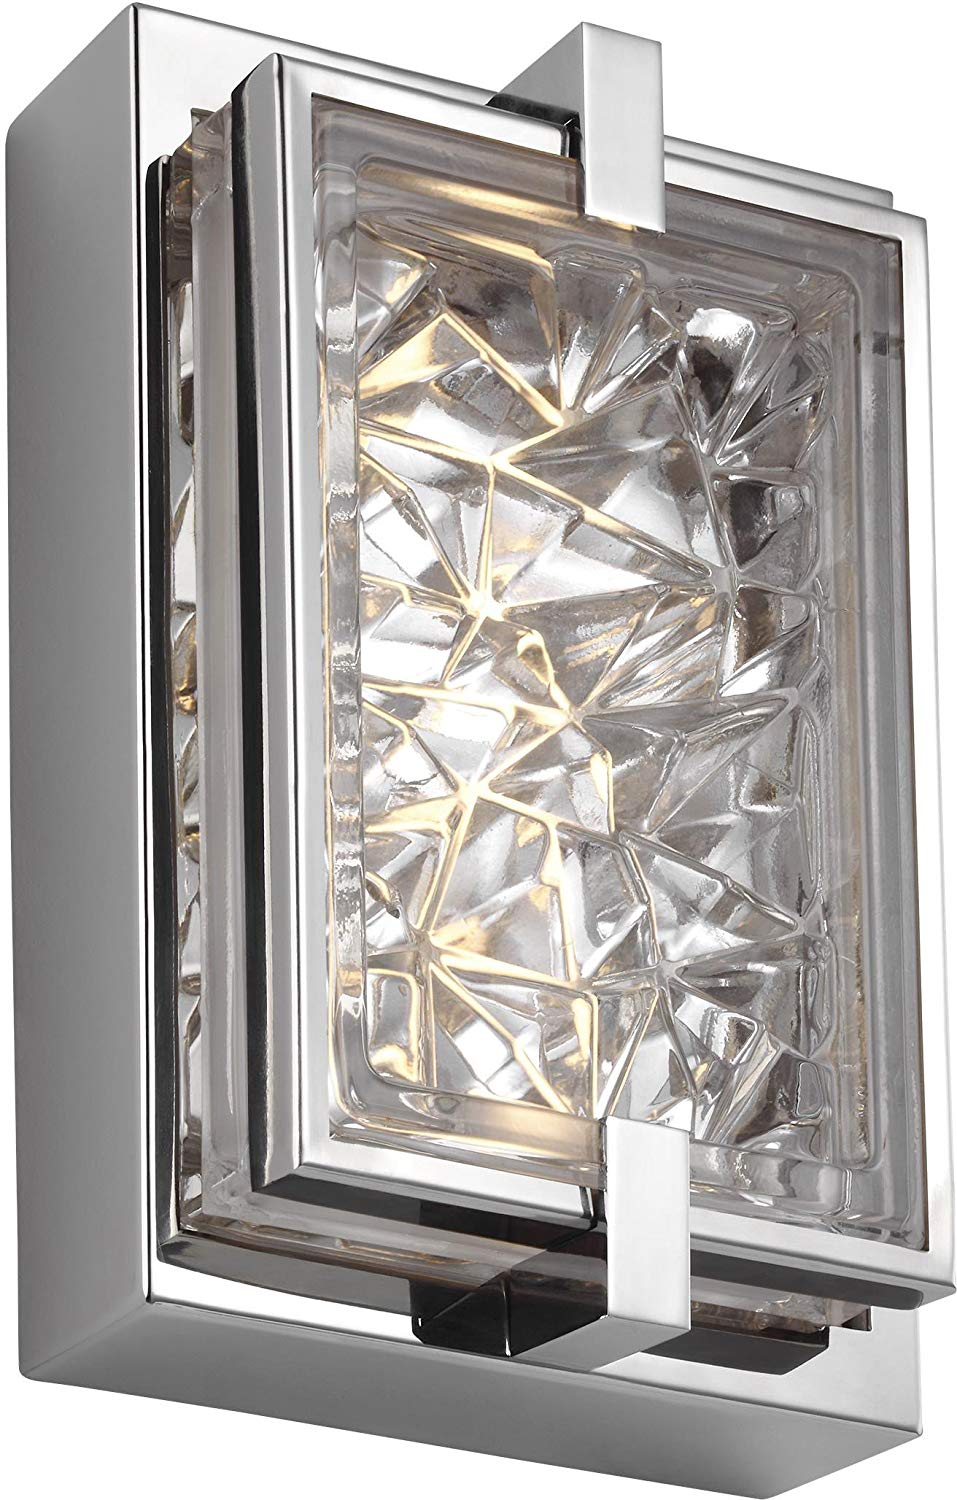 Feiss WB1865PST-L1 Erin Wall Sconce 1-Light LED 5 Watts, Polished Stainless Steel